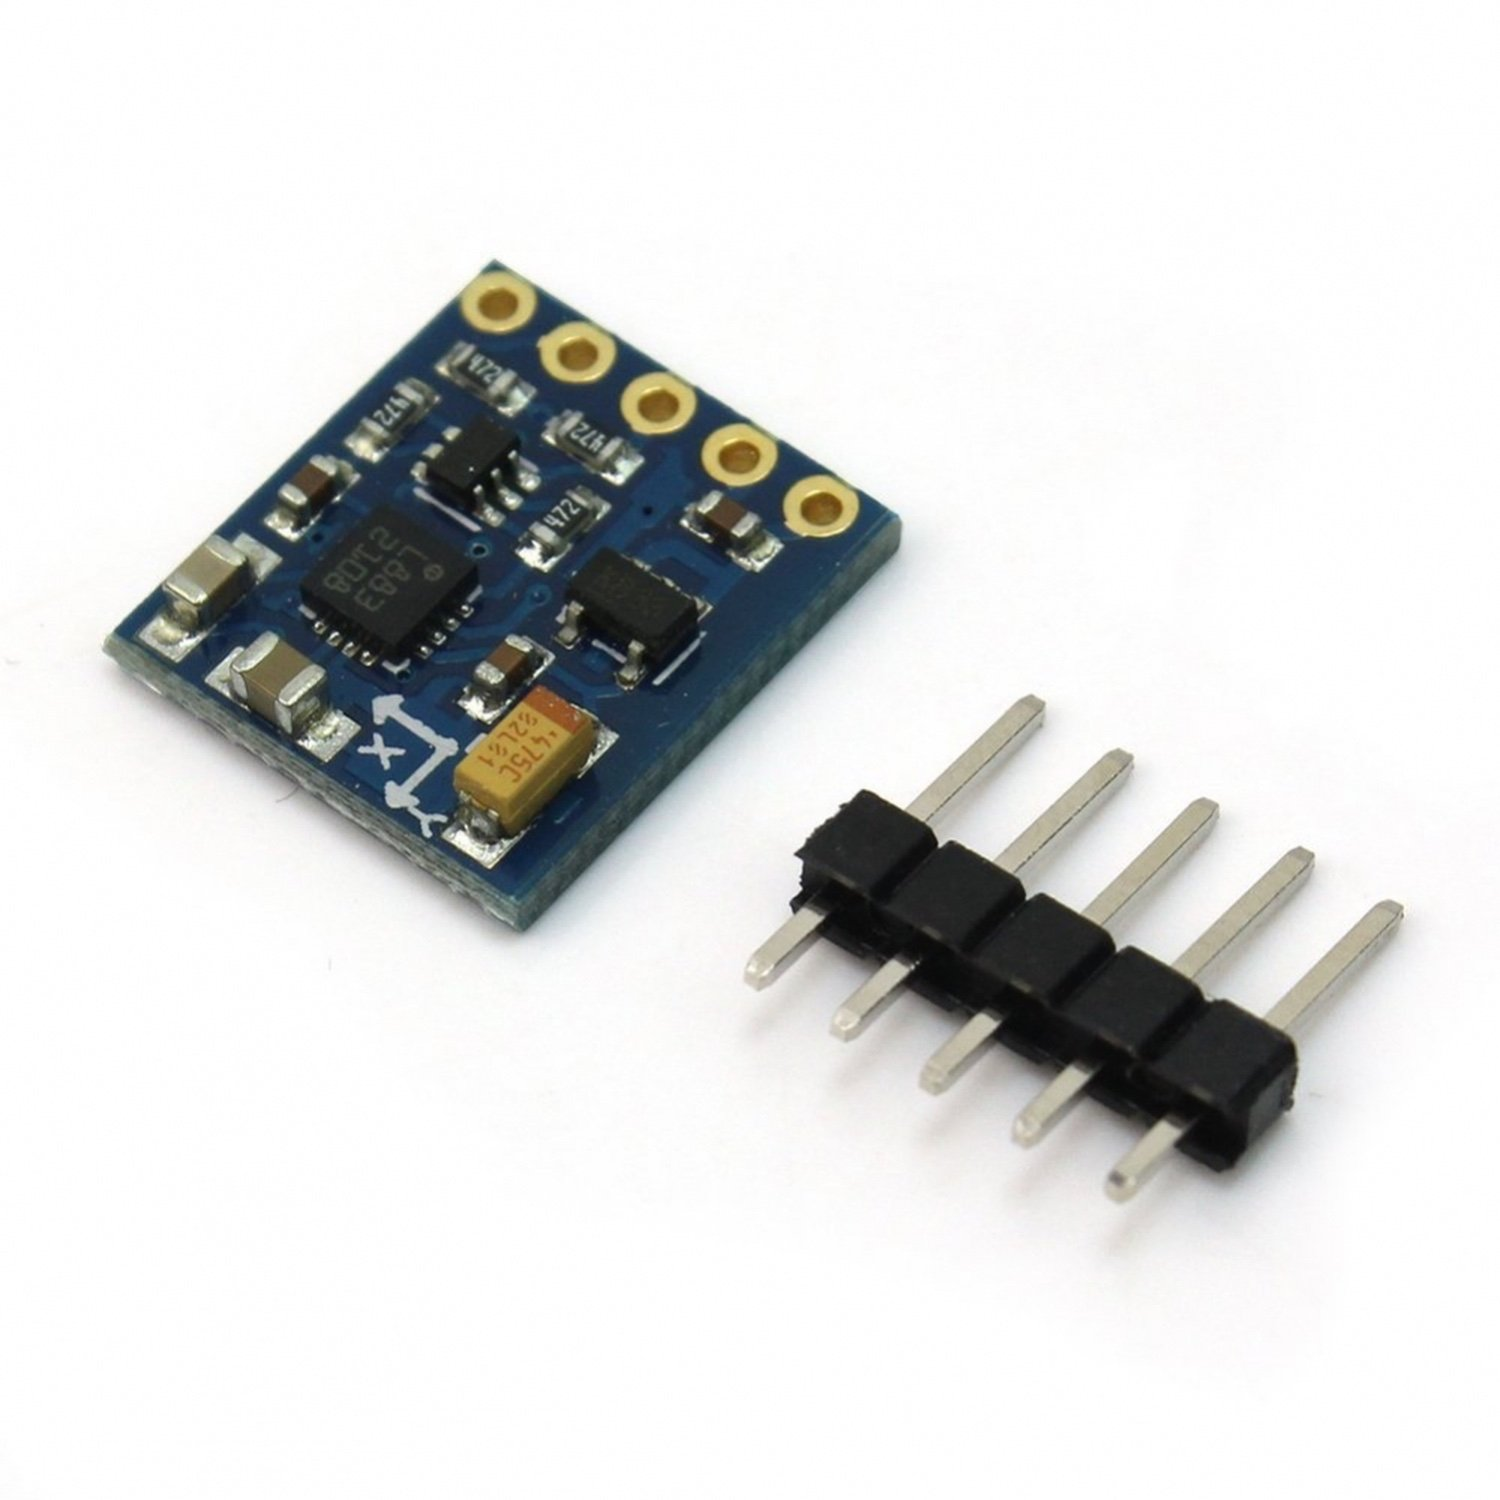 HMC5883L-Axis Accelerometer Module [Arduino Compatible] new italian original 9 axes motion shield for arduino based bno055 integrated accelerometer gyroscope geomagnetic sensor etc